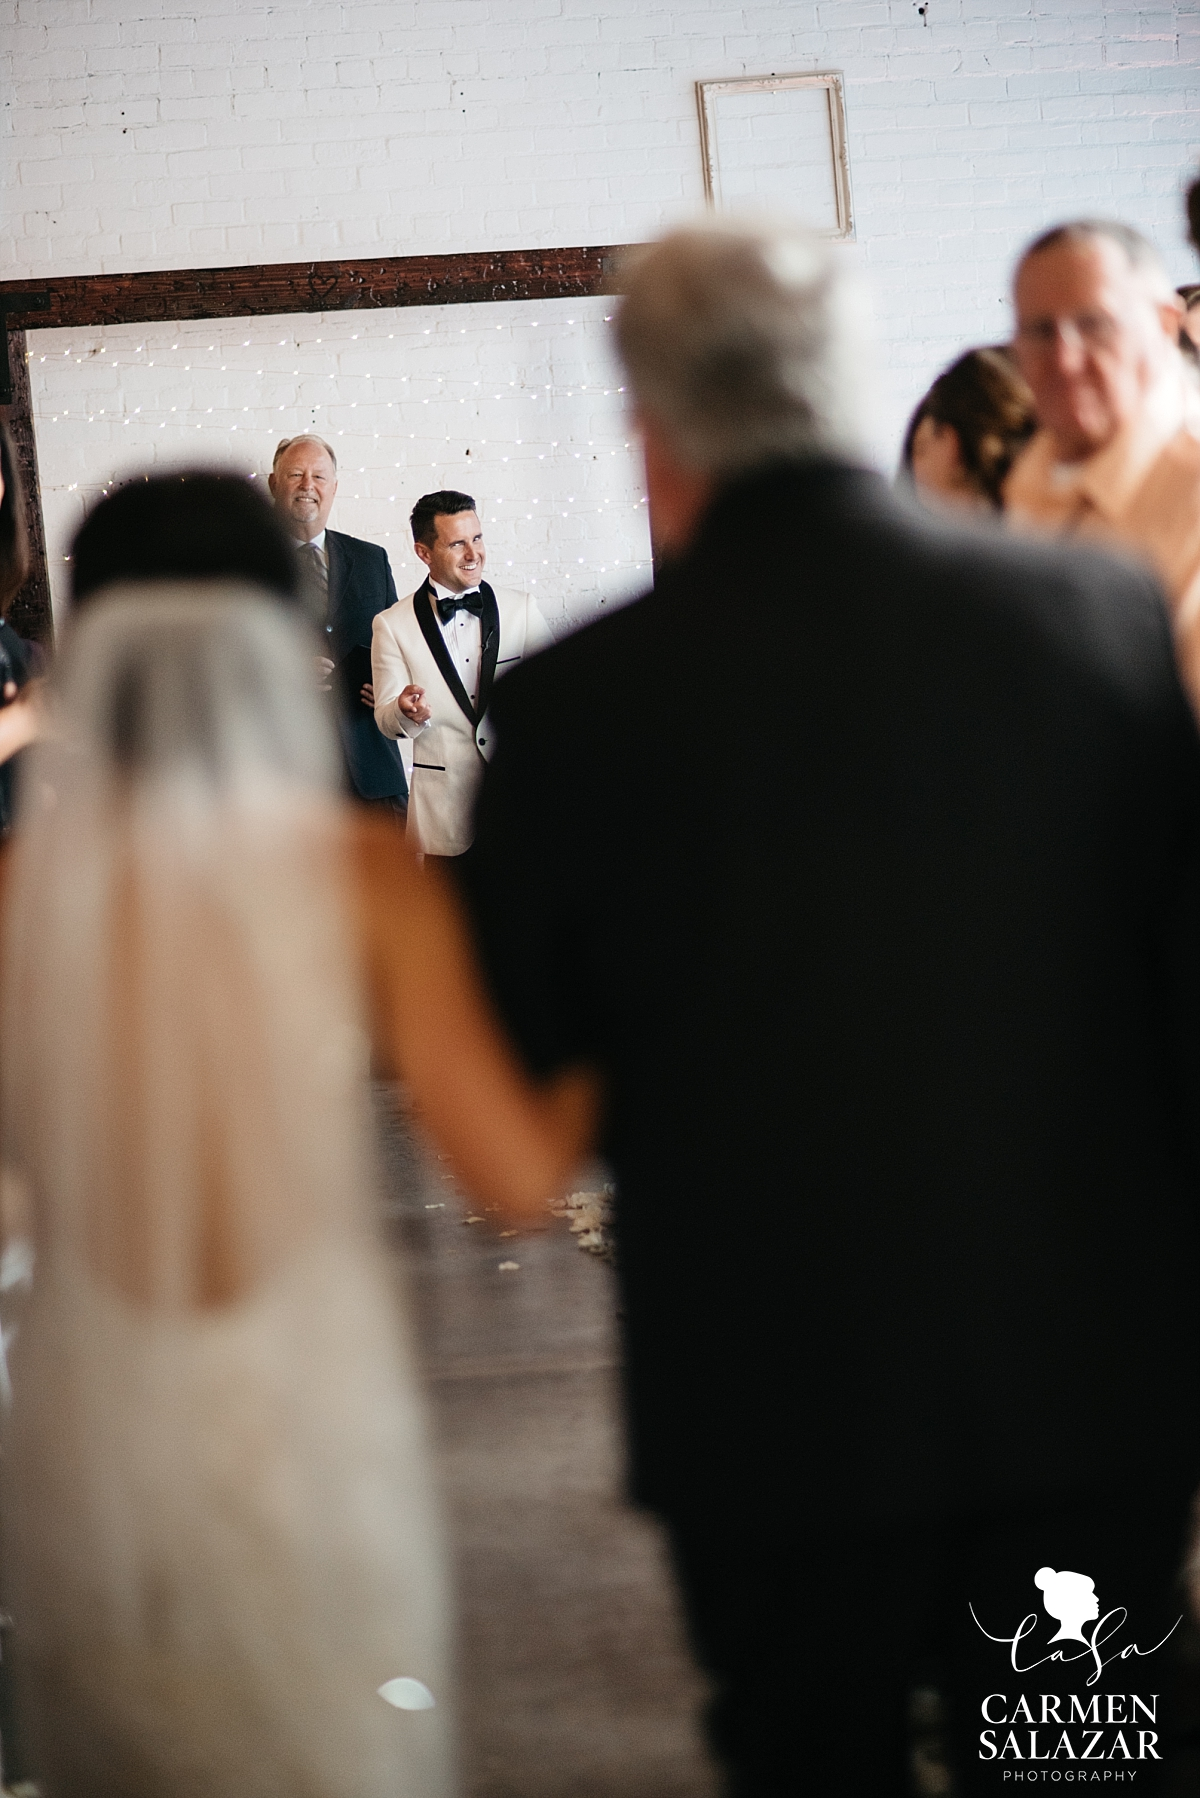 Grinning groom excited to see his bride - Carmen Salazar